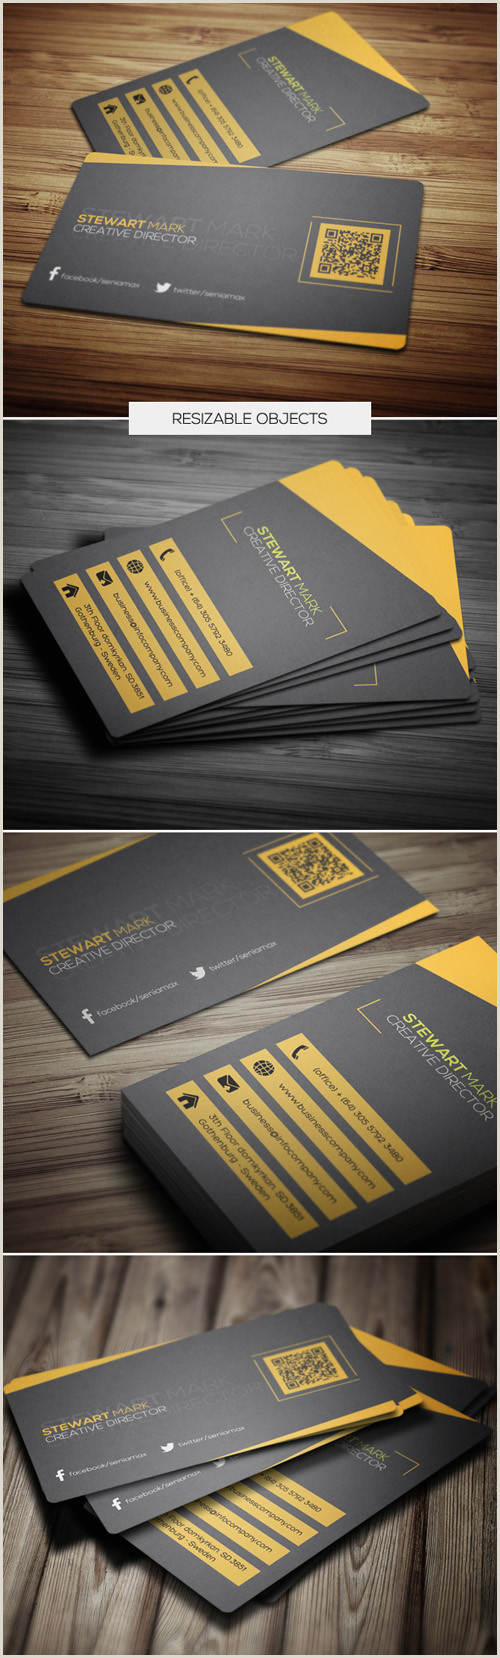 High Quality Unique Paper Business Cards 29 High Quality Creative & Unique Business Cards